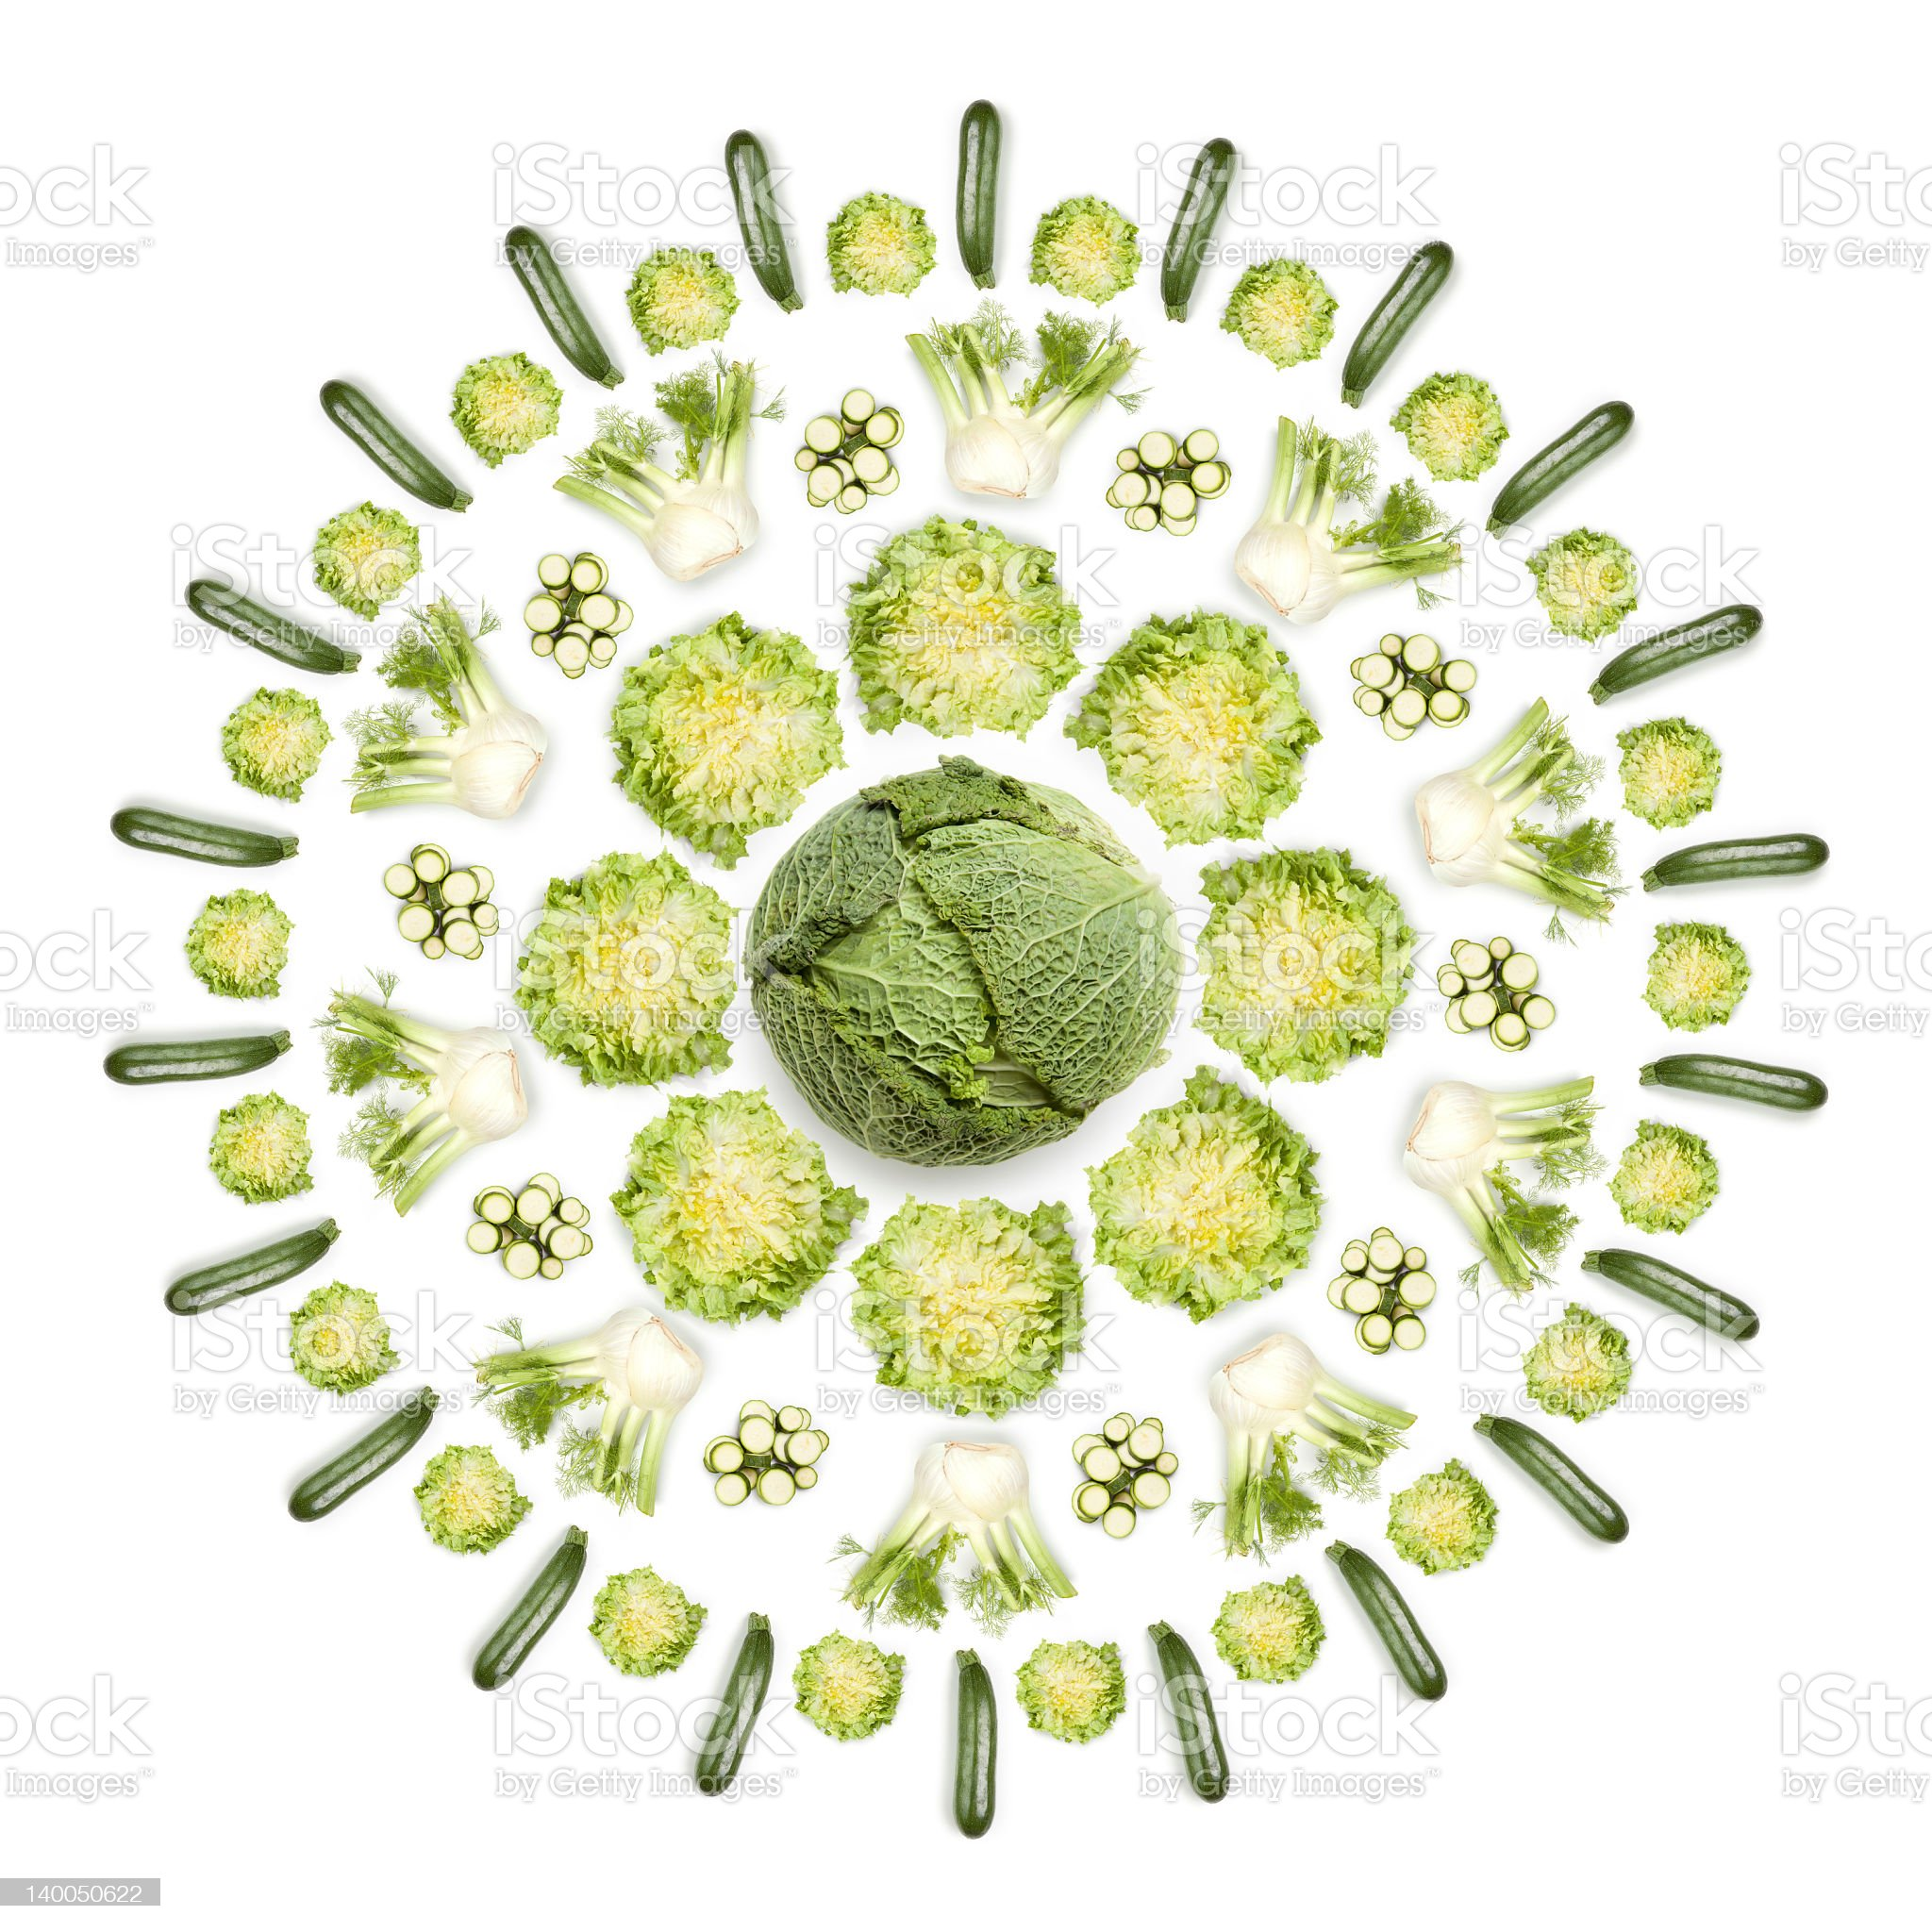 Greens sun: vegetables arranged in circular shape on white background royalty-free stock photo